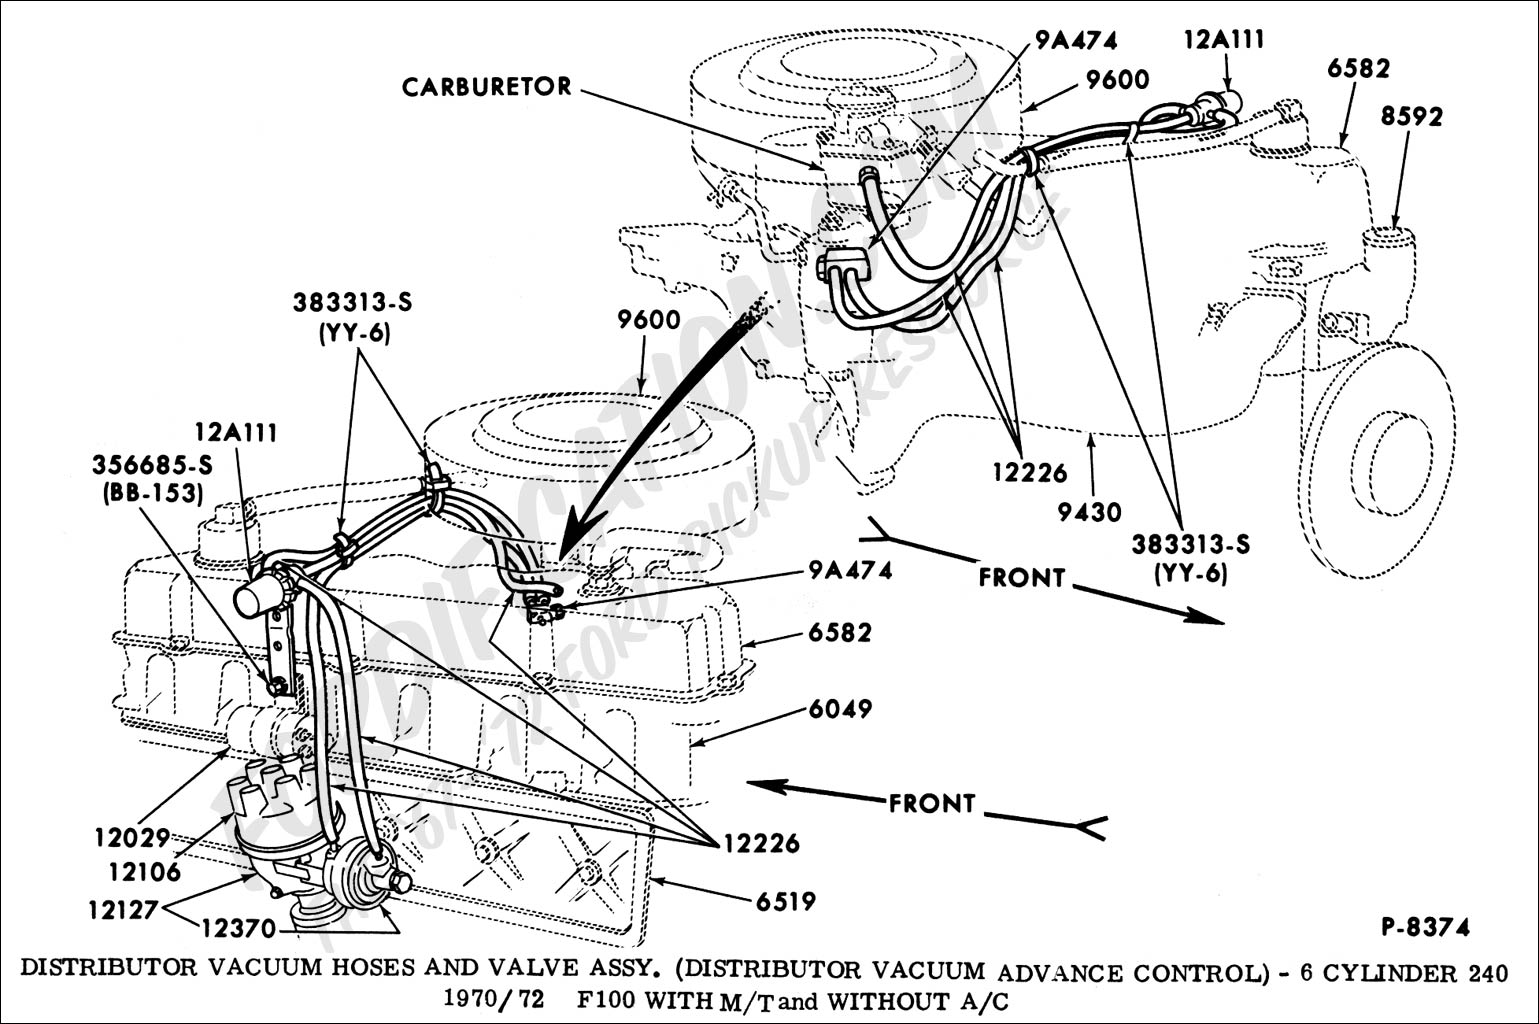 56 20Chevy 20index together with Ford Truck Technical Drawings And Schematics Section C moreover 23807 Smog For A 1977 also LE1r 5127 in addition 1436919 2wd Twin I Beam Lift. on 1972 ford f100